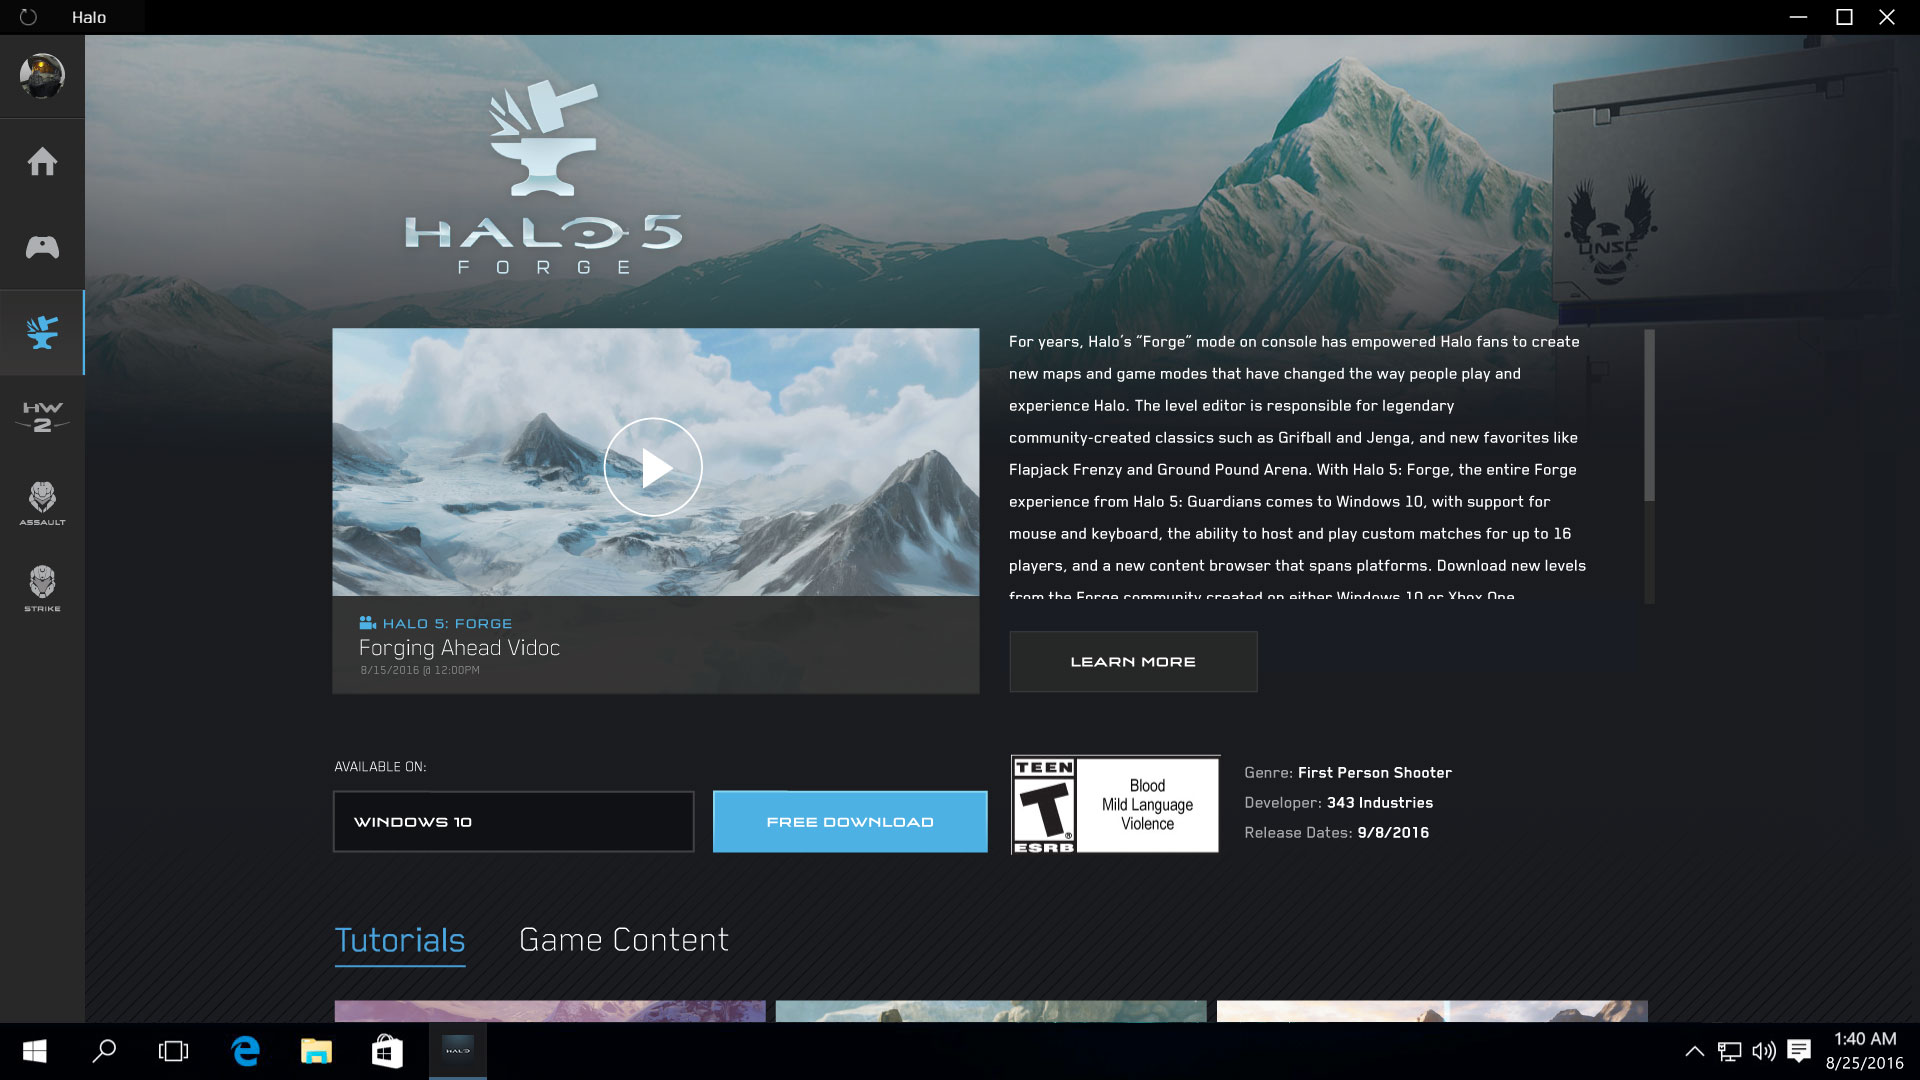 Microsoft Teases Halo 5: Forge App For Windows 10 PCs